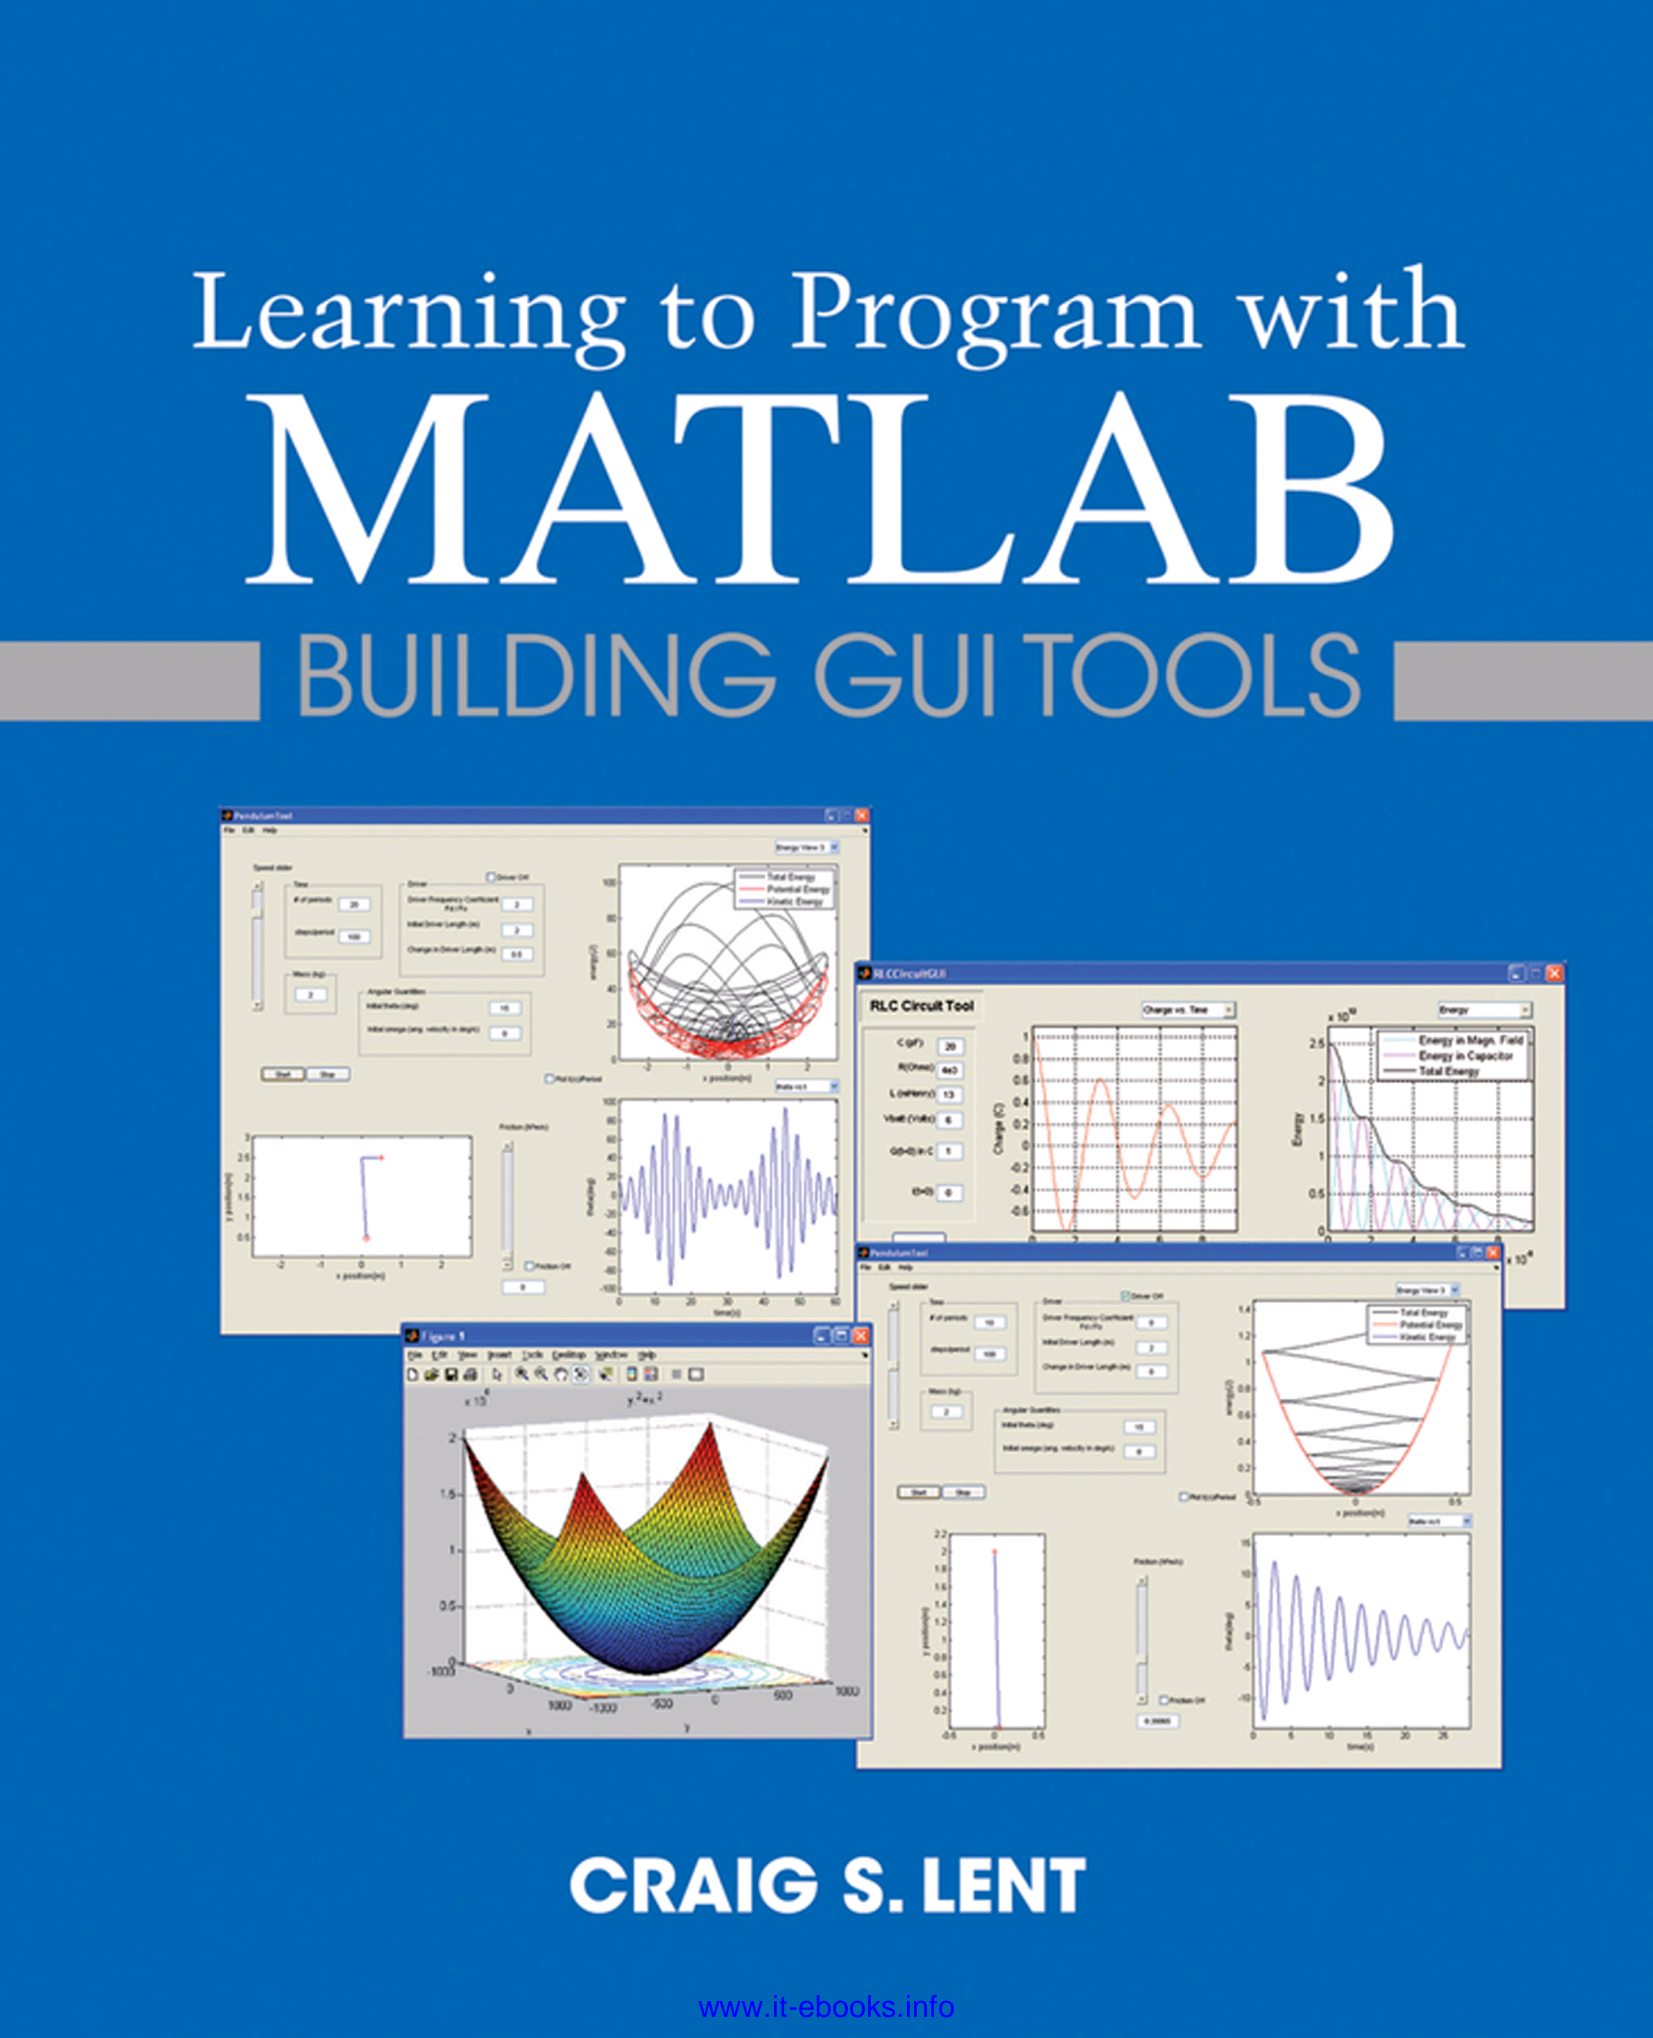 learning to program with matlab in 2020 Math methods